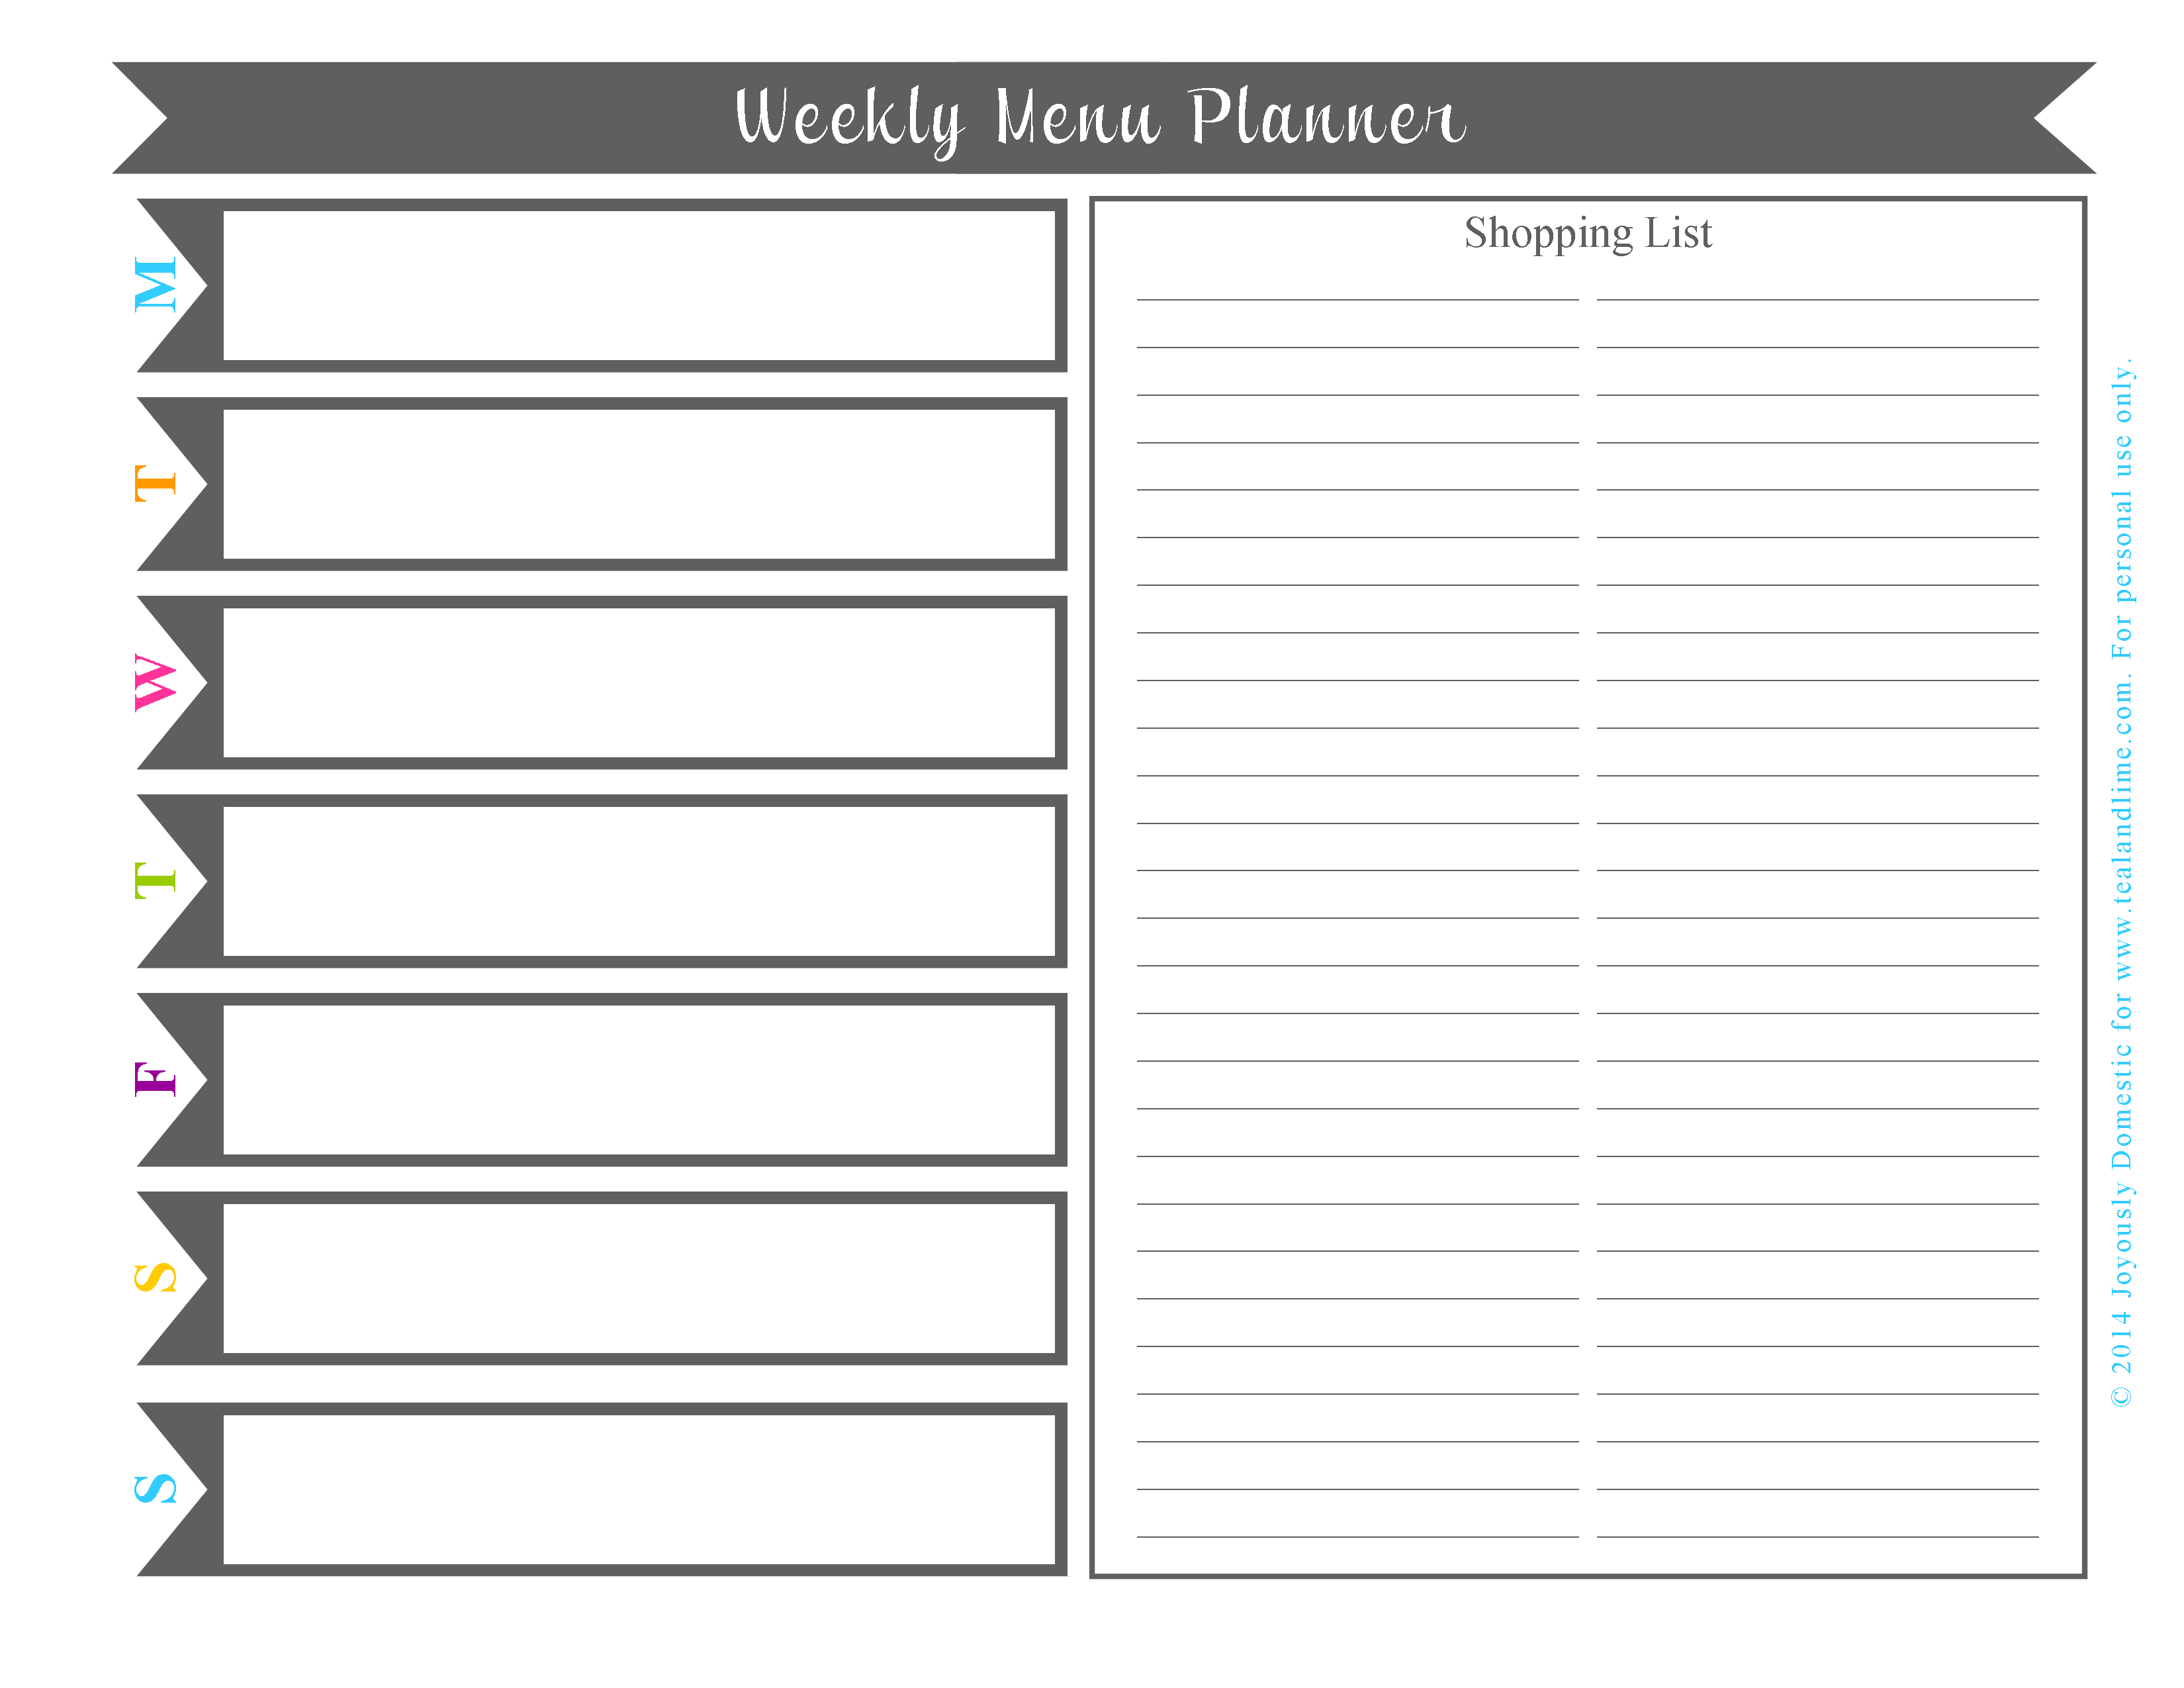 Plan Your Weekly Dinner Menu in Under 30 Minutes Free Printable – Free Printable Weekly Planner